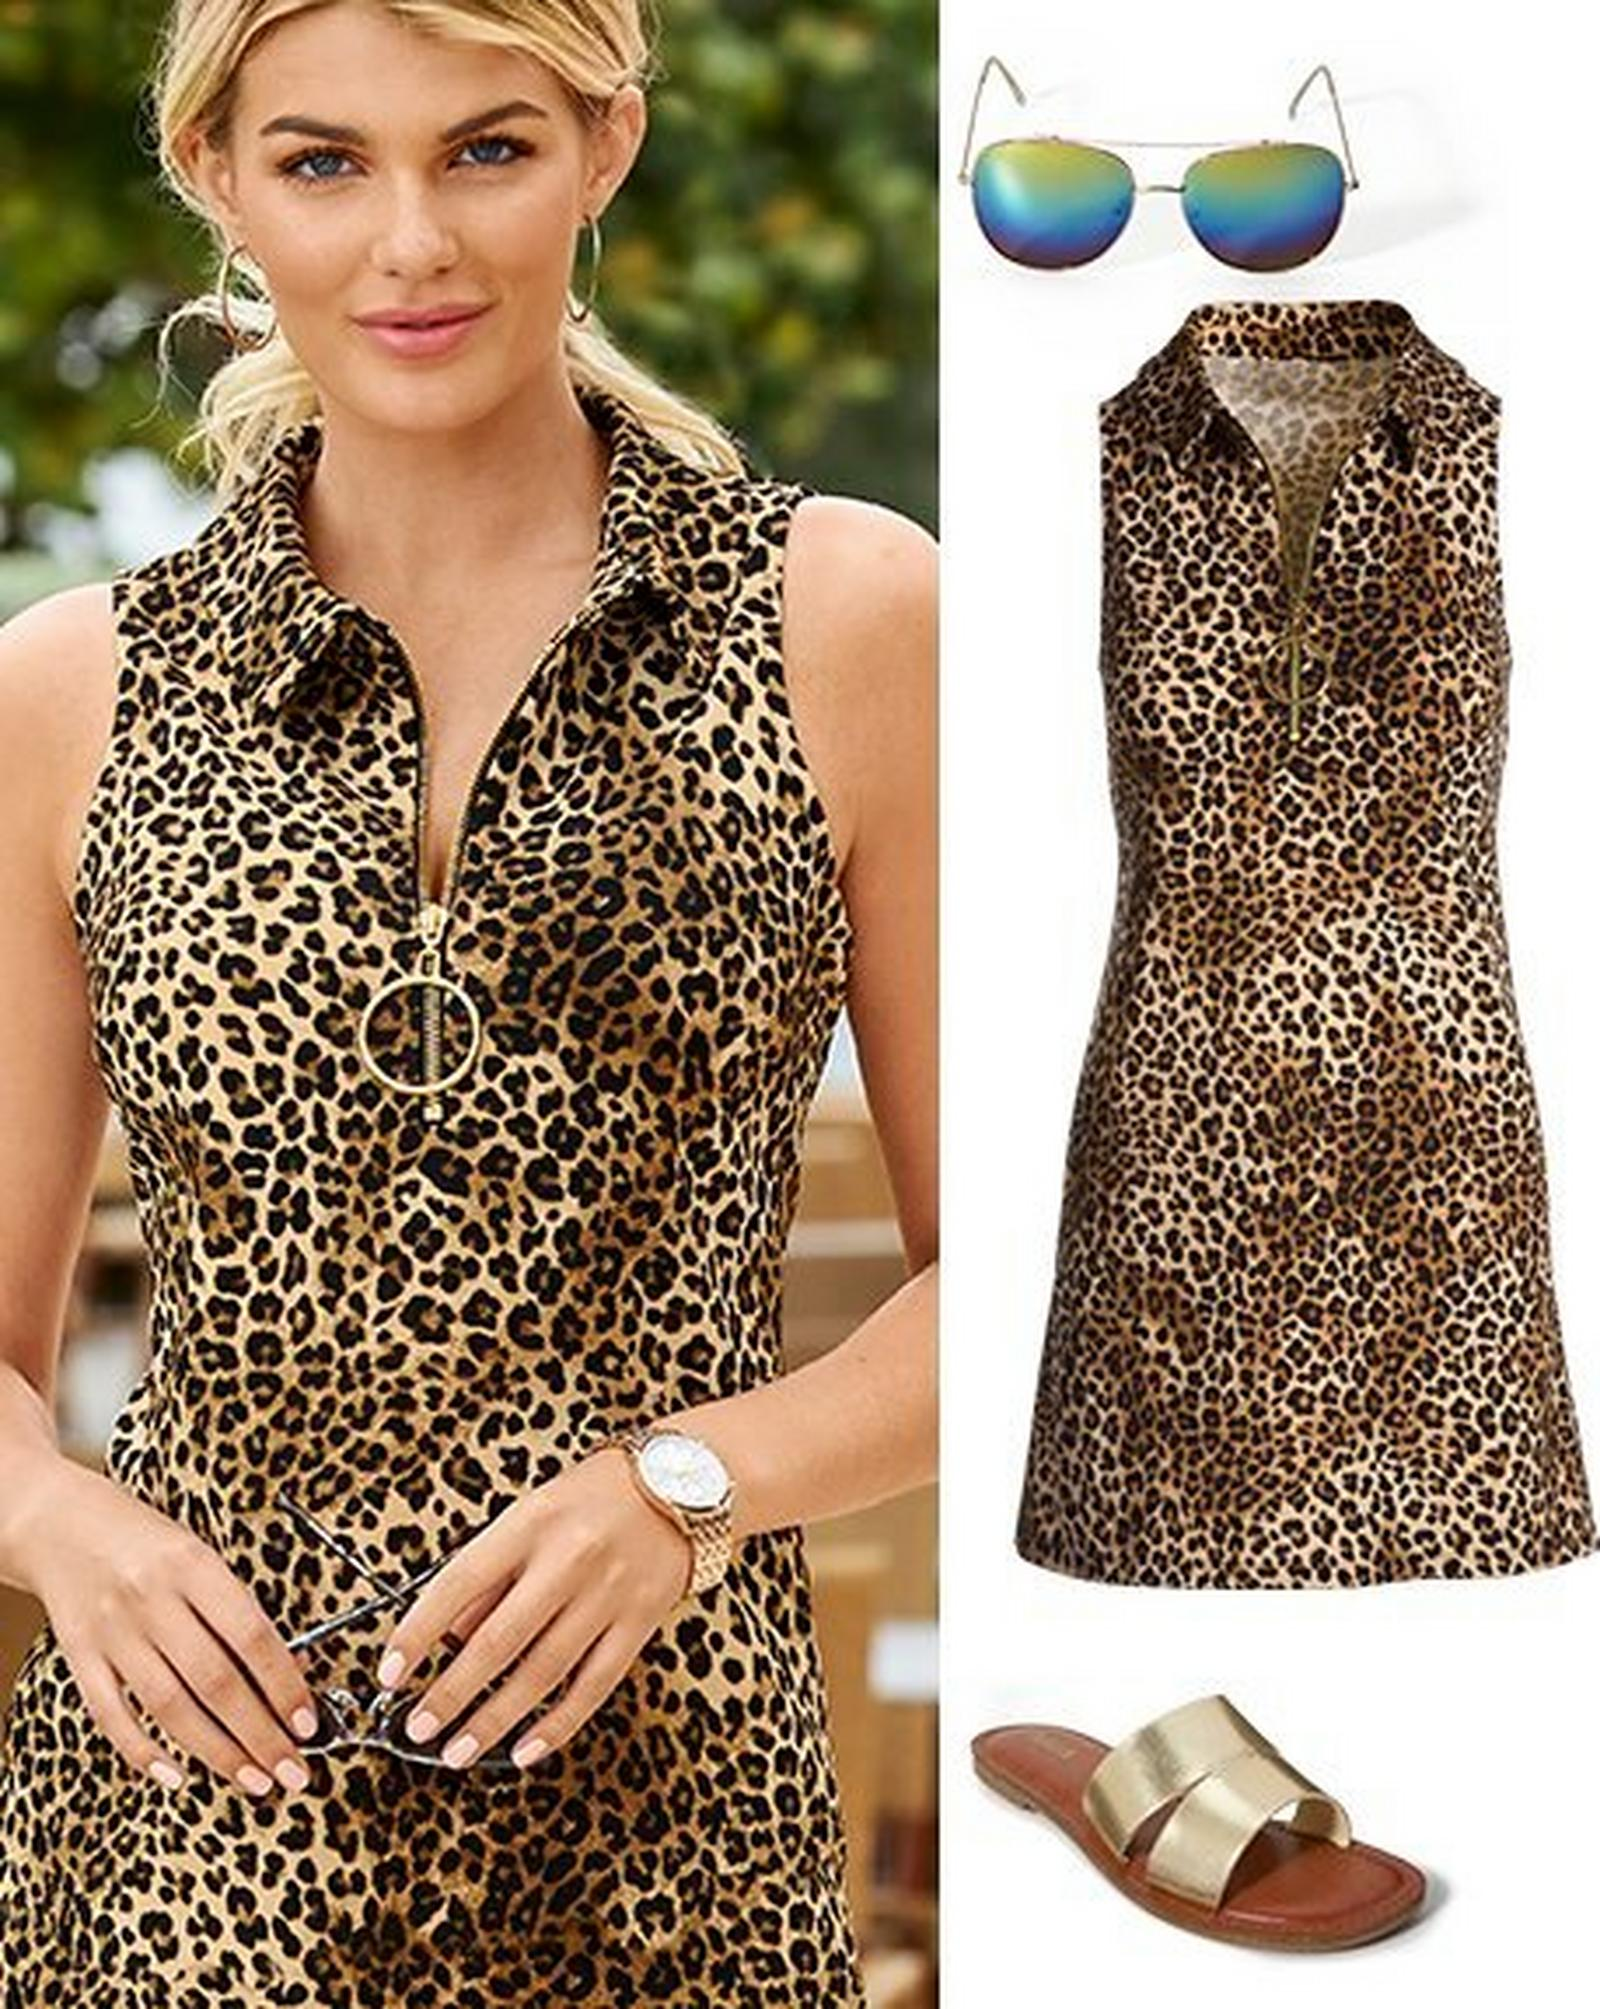 left model wearing a leopard print sleeveless collared dress. right panel: leopard print sleeveless collared dress, aviator sunglasses, and gold double-strap sandals.